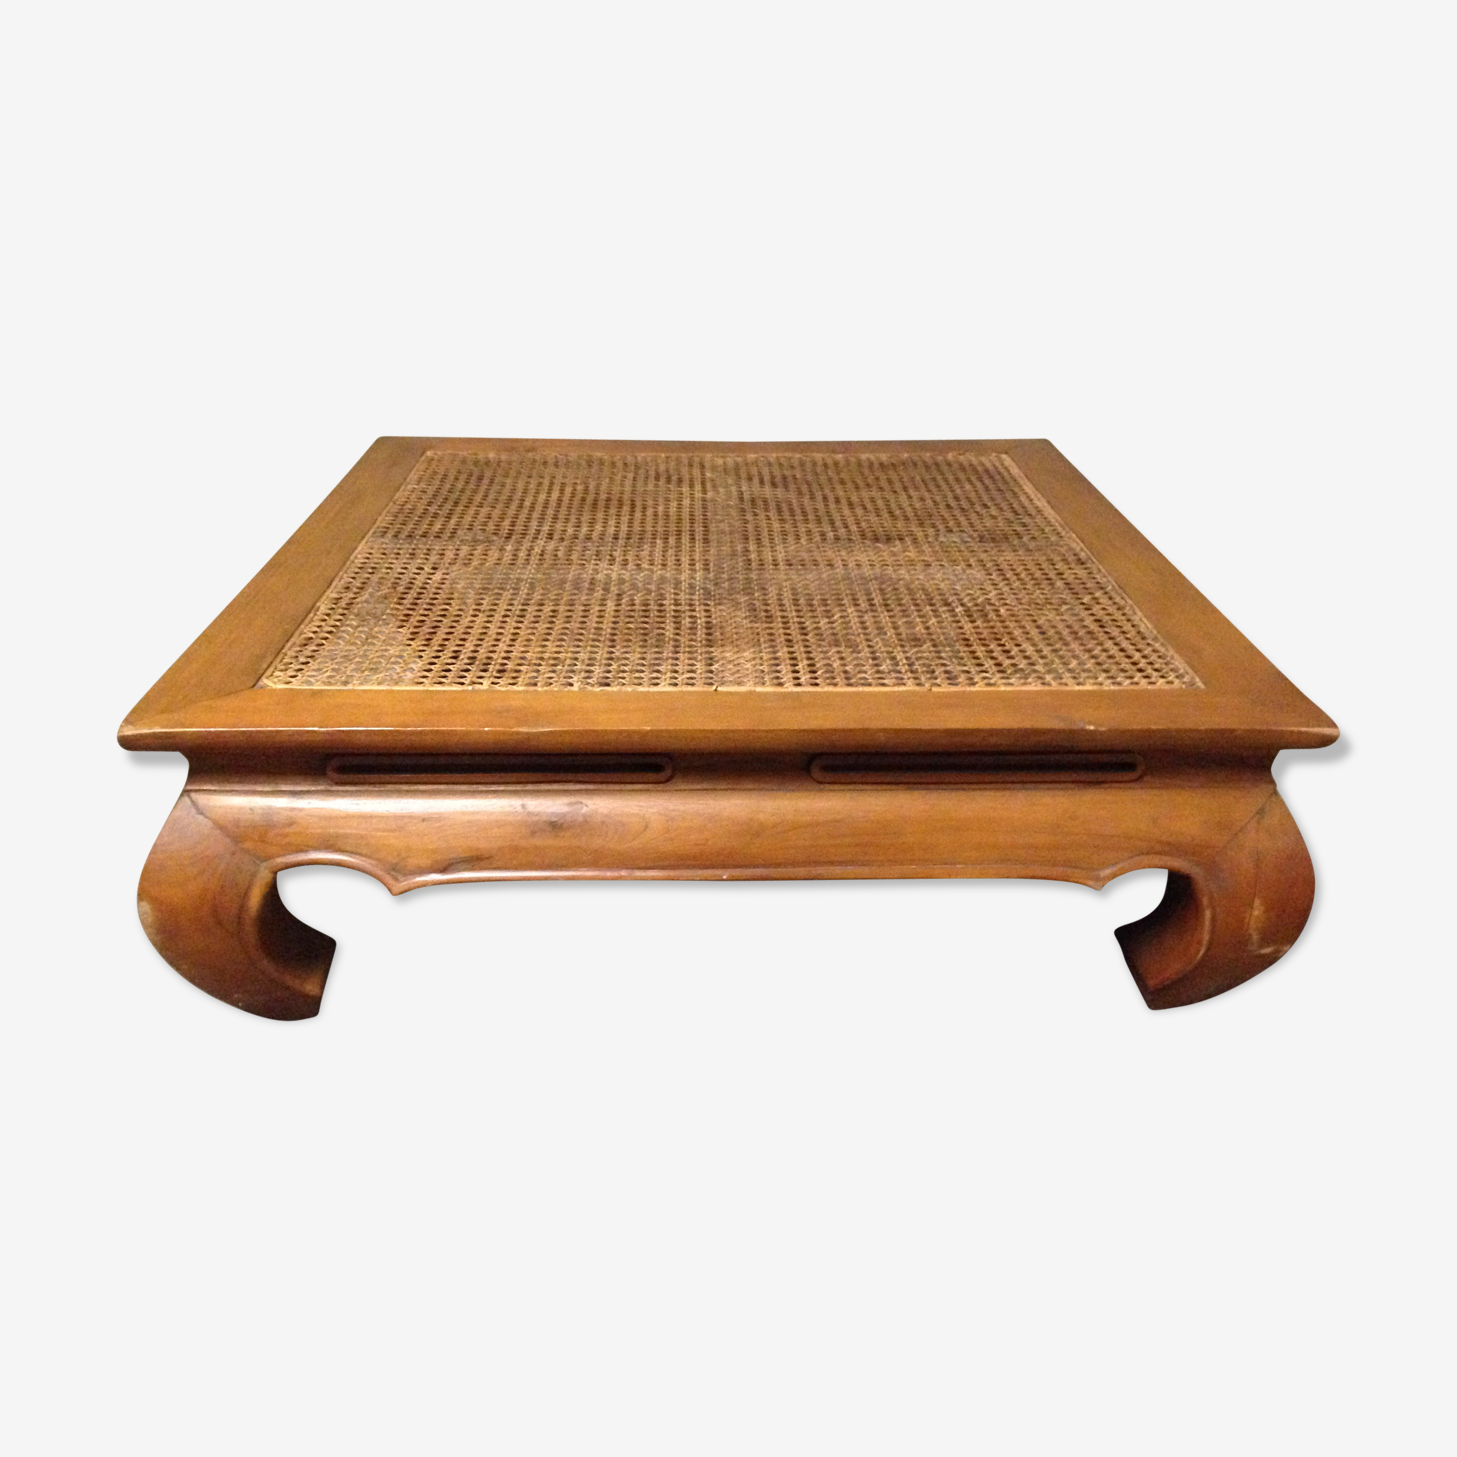 Table basse opium canage et bois